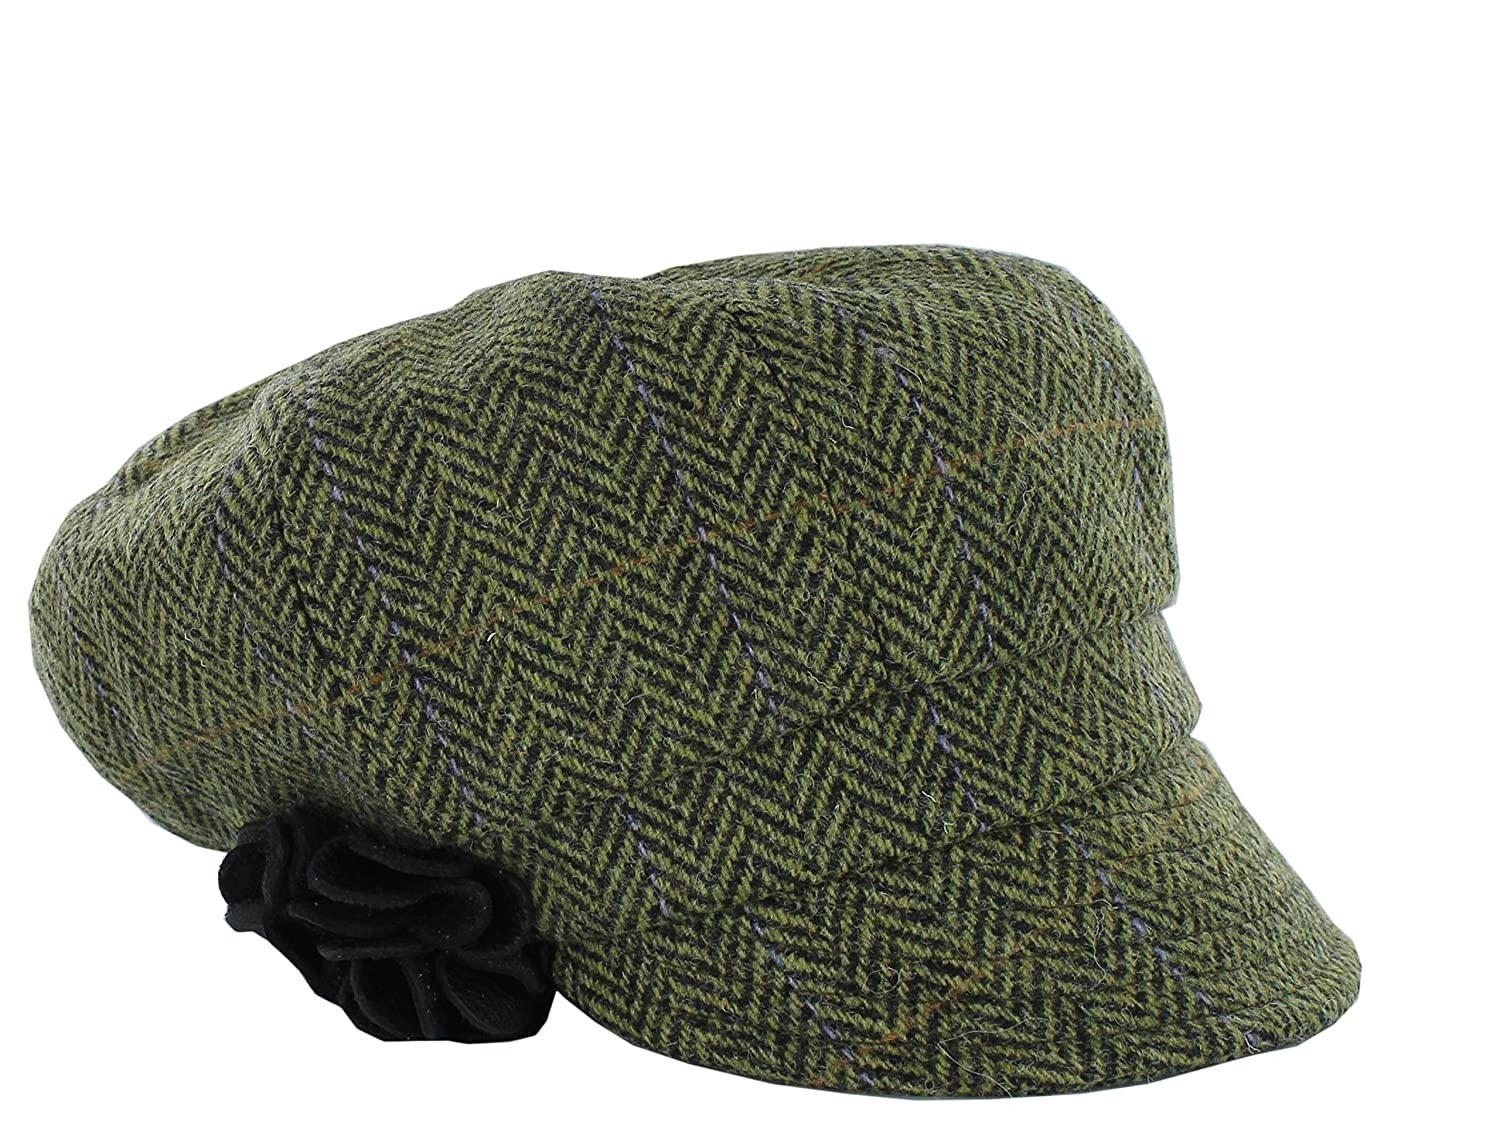 4084aedb Mucros Weavers Women's Irish Made Newsboy Cap (Color 51) at Amazon Women's  Clothing store: